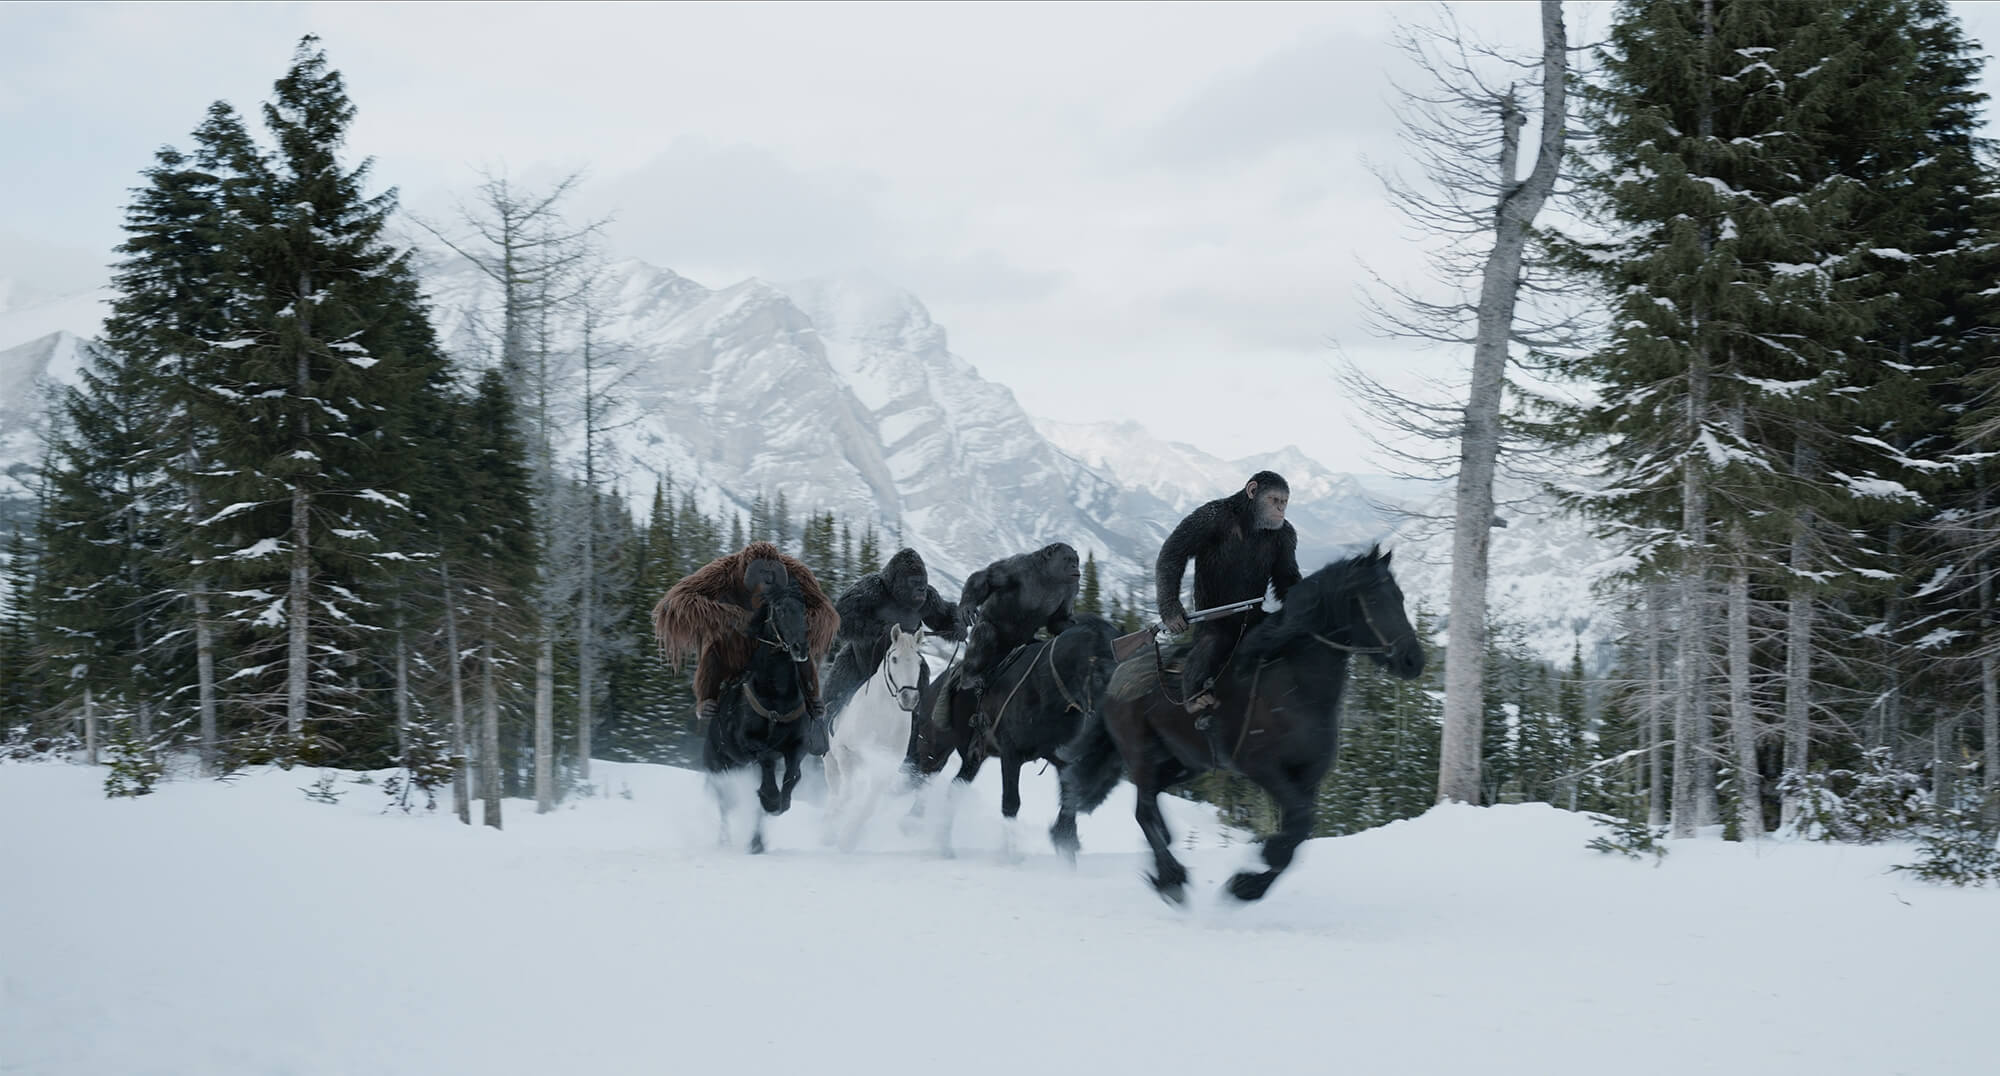 No Mercy In Final Trailer For 'War For The Planet Of The Apes'